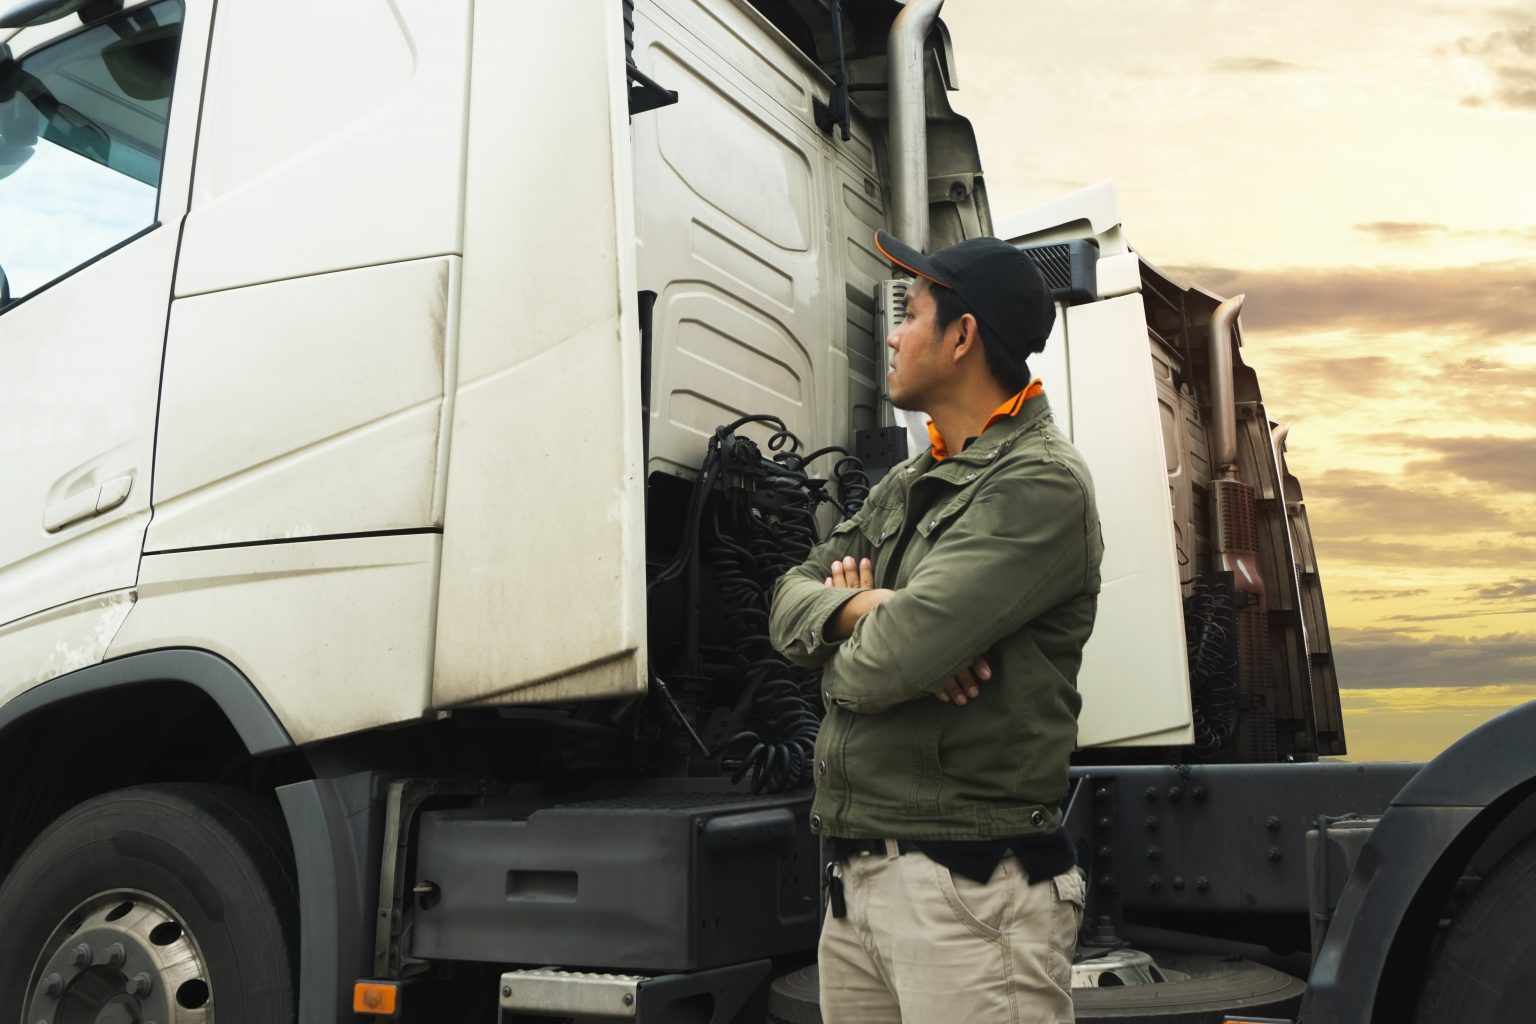 With fewer police out patrolling, truckers fighting for their rights to carry firearms for self defense